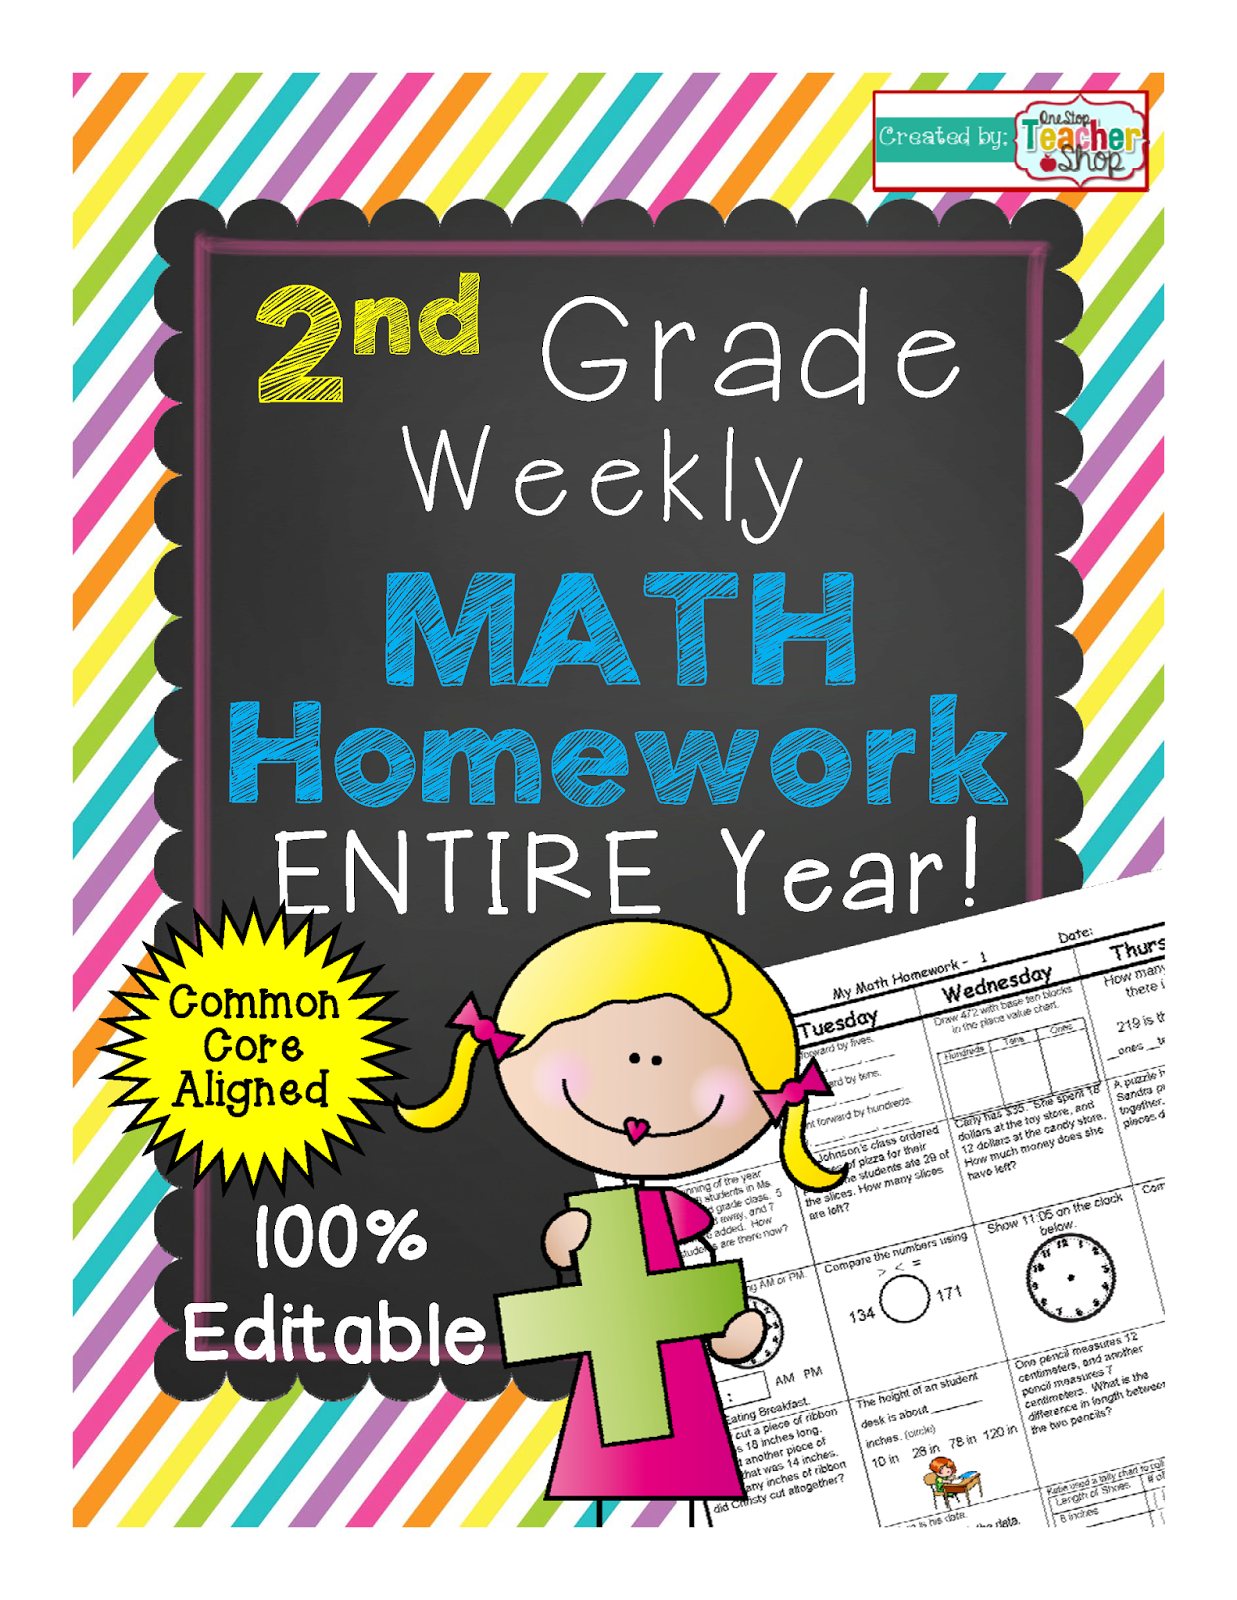 Civil Essay: Math homework help 2nd grade certified service!